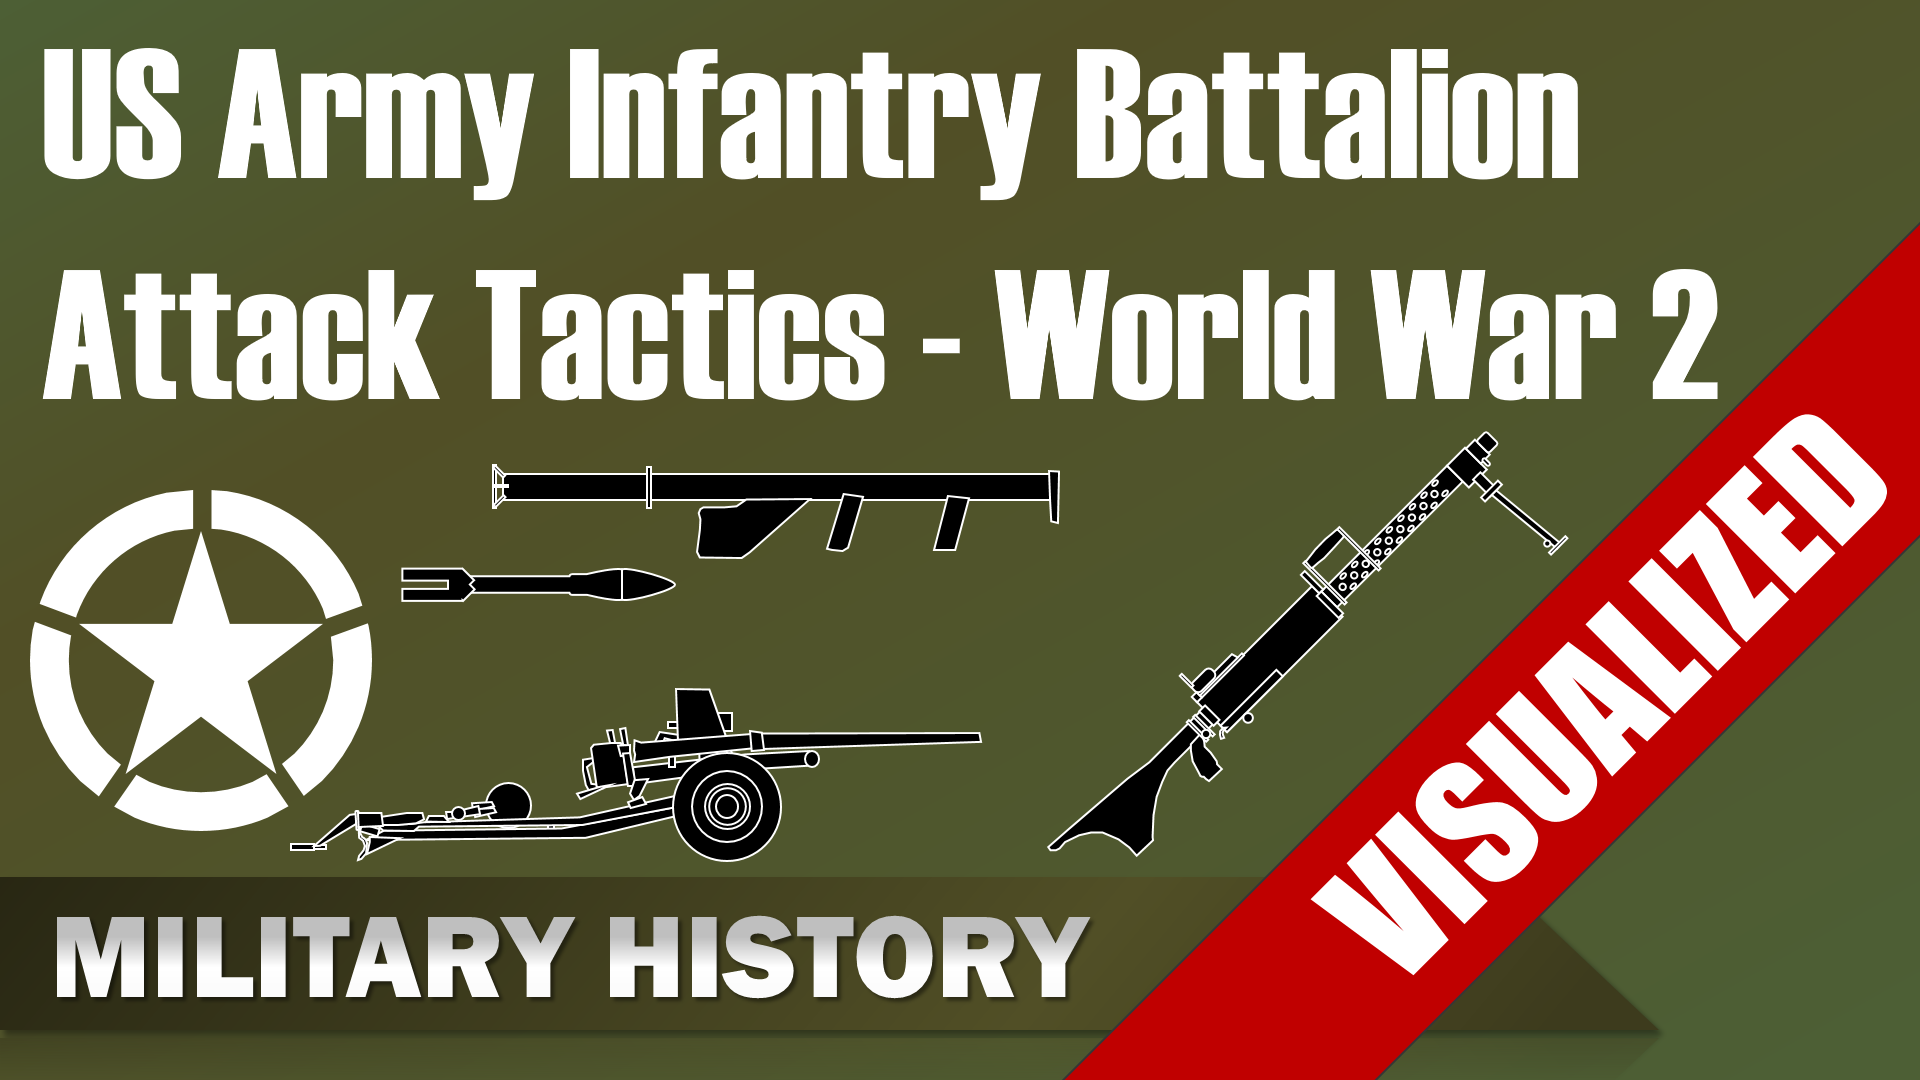 US Army Infantry Battalion Structure & Attack Tactics World War 2 (1944)